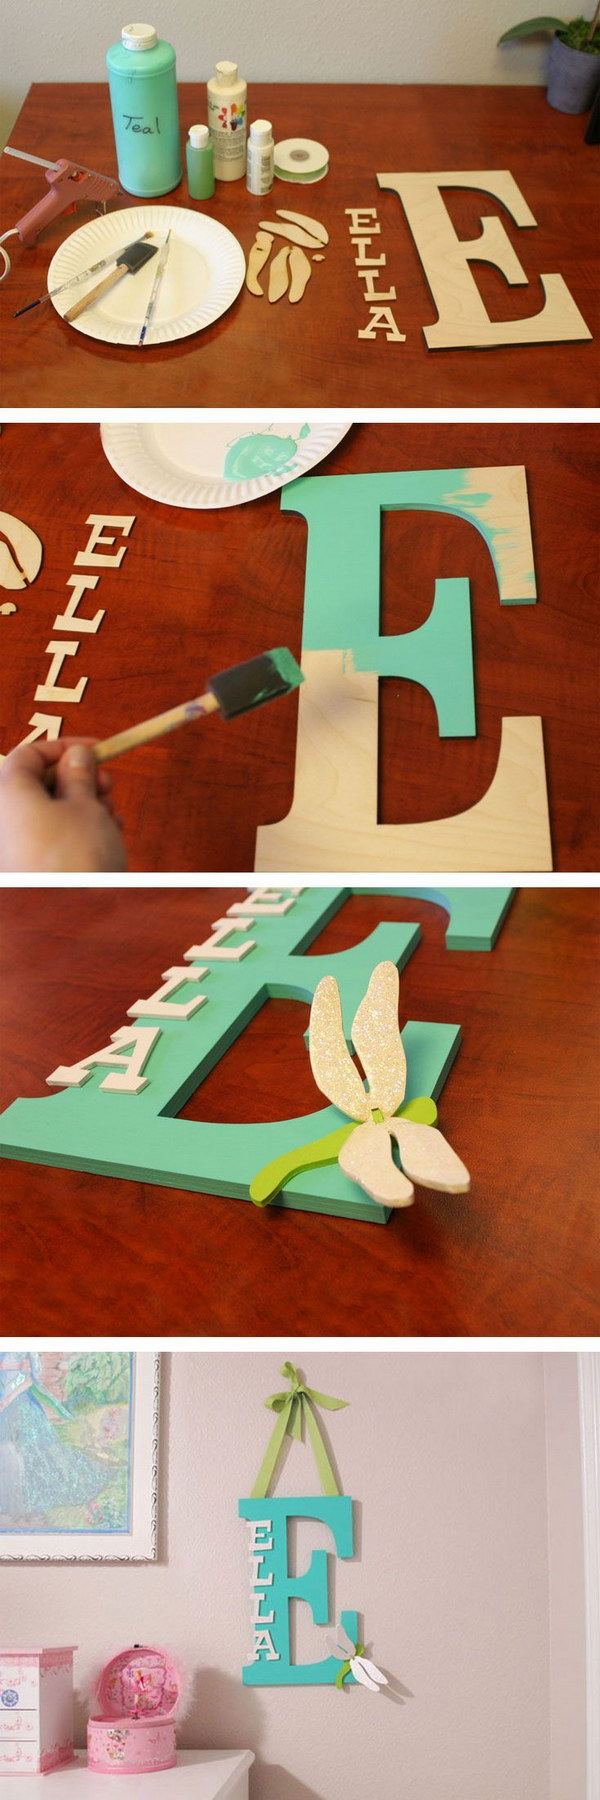 Diy Letter Ideas  Tutorials  Hative